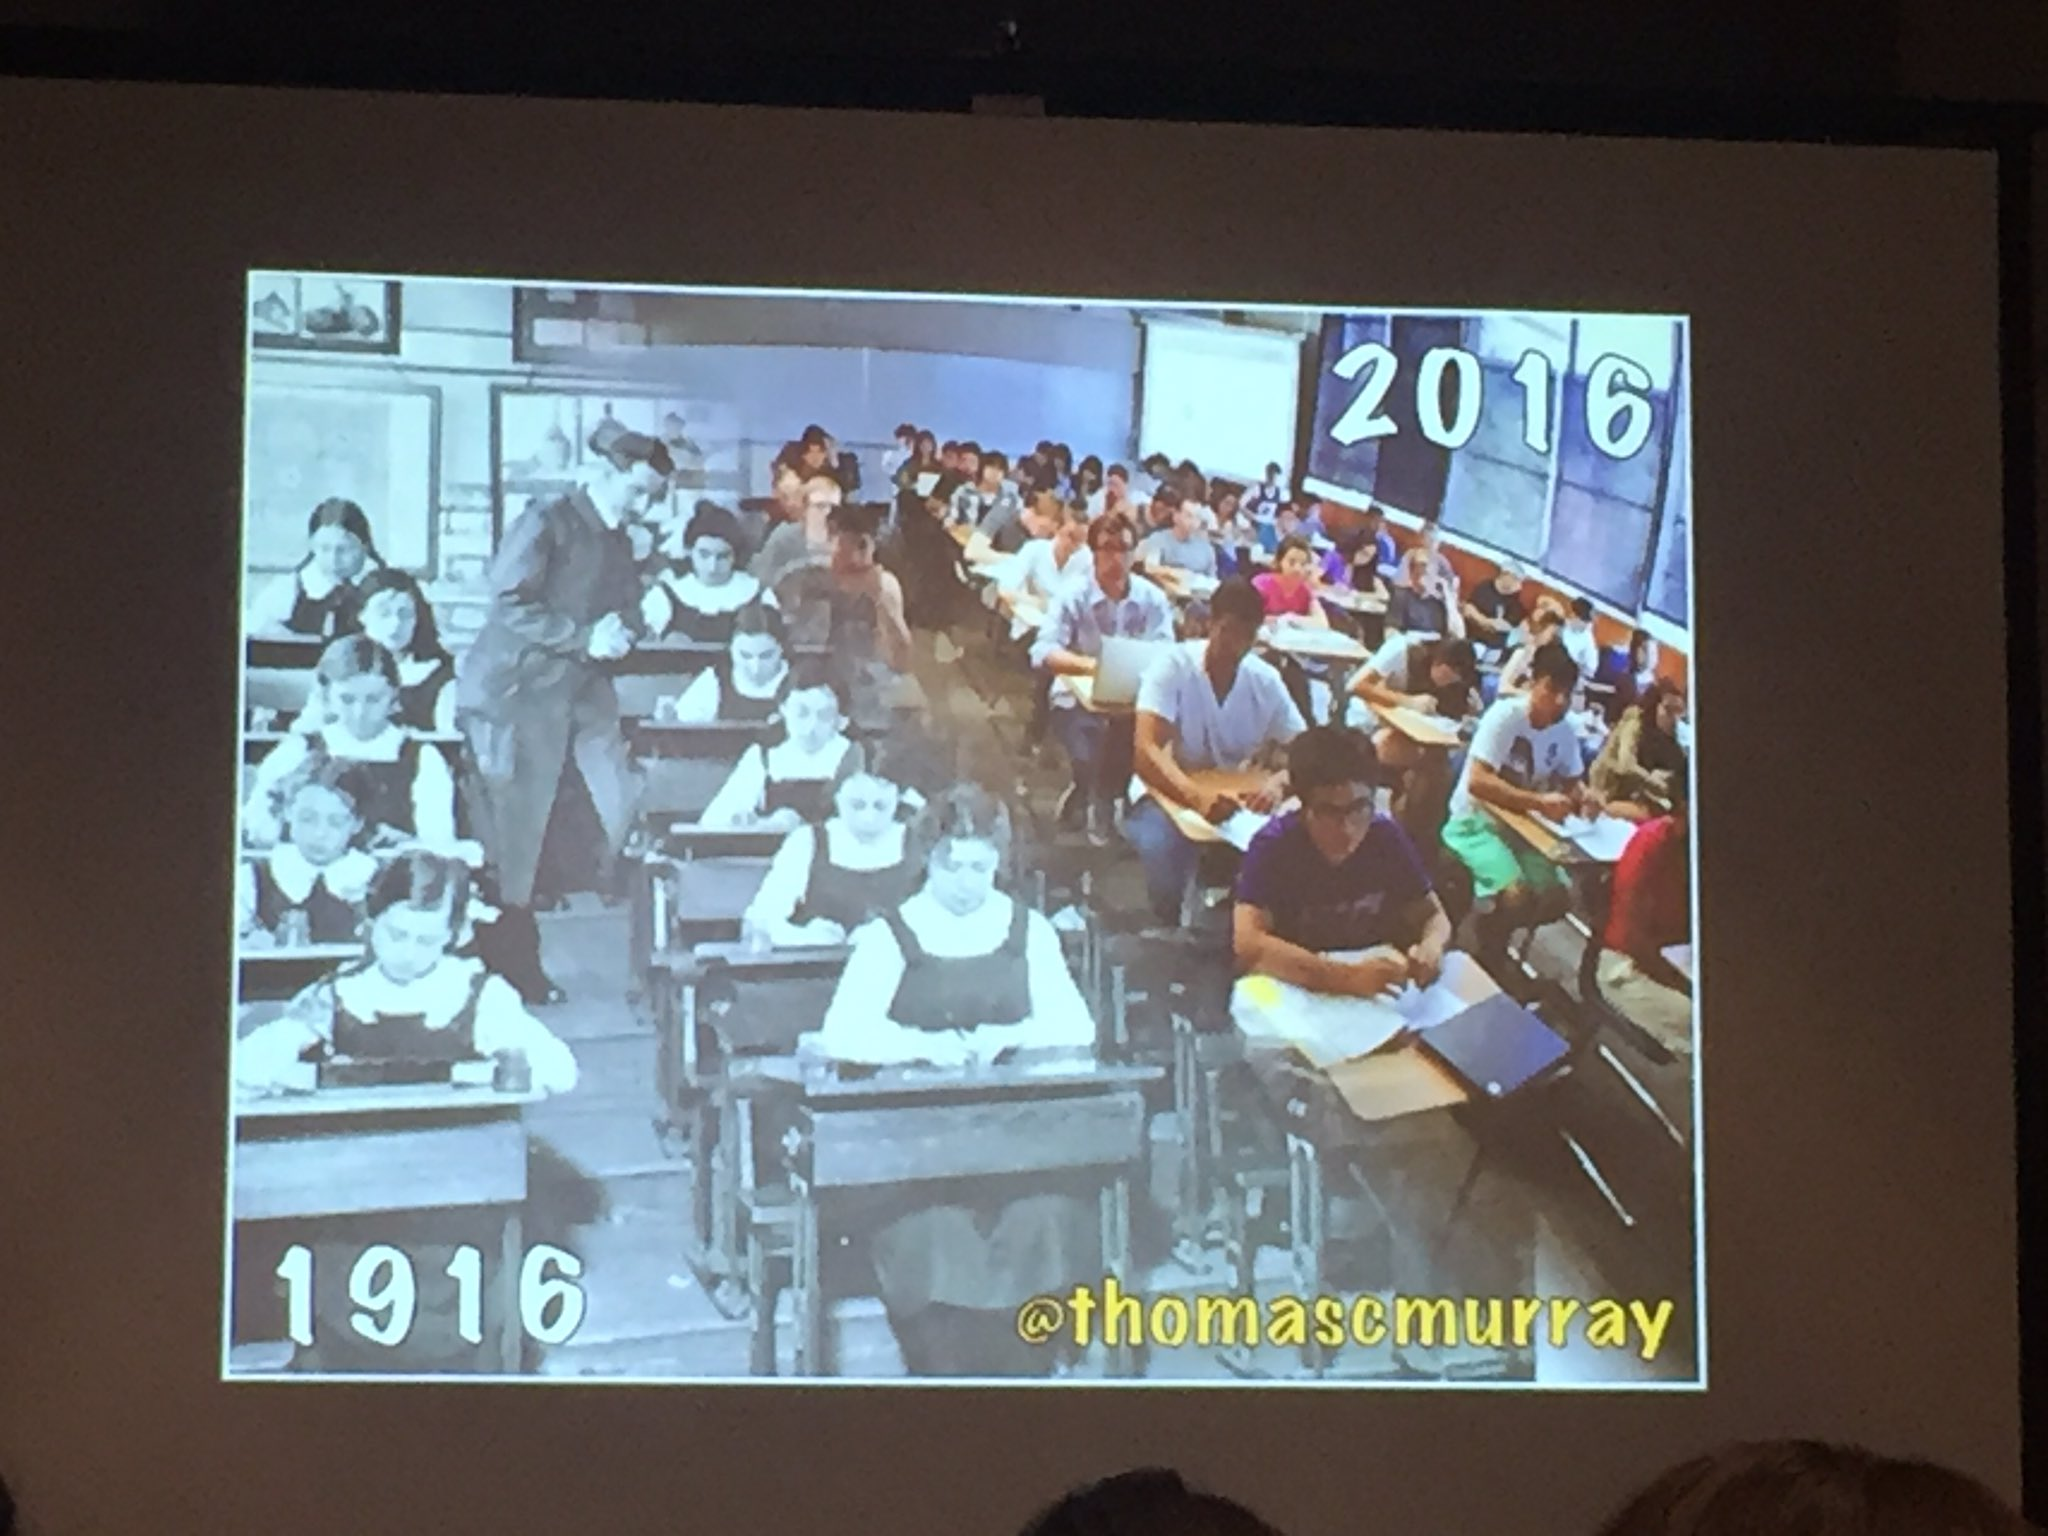 """How much has edu changed in past 100 yrs? We need to prepare kids for this world, not the world we grew up in..."" @thomascmurray #cue17 https://t.co/JOf2adlpi3"